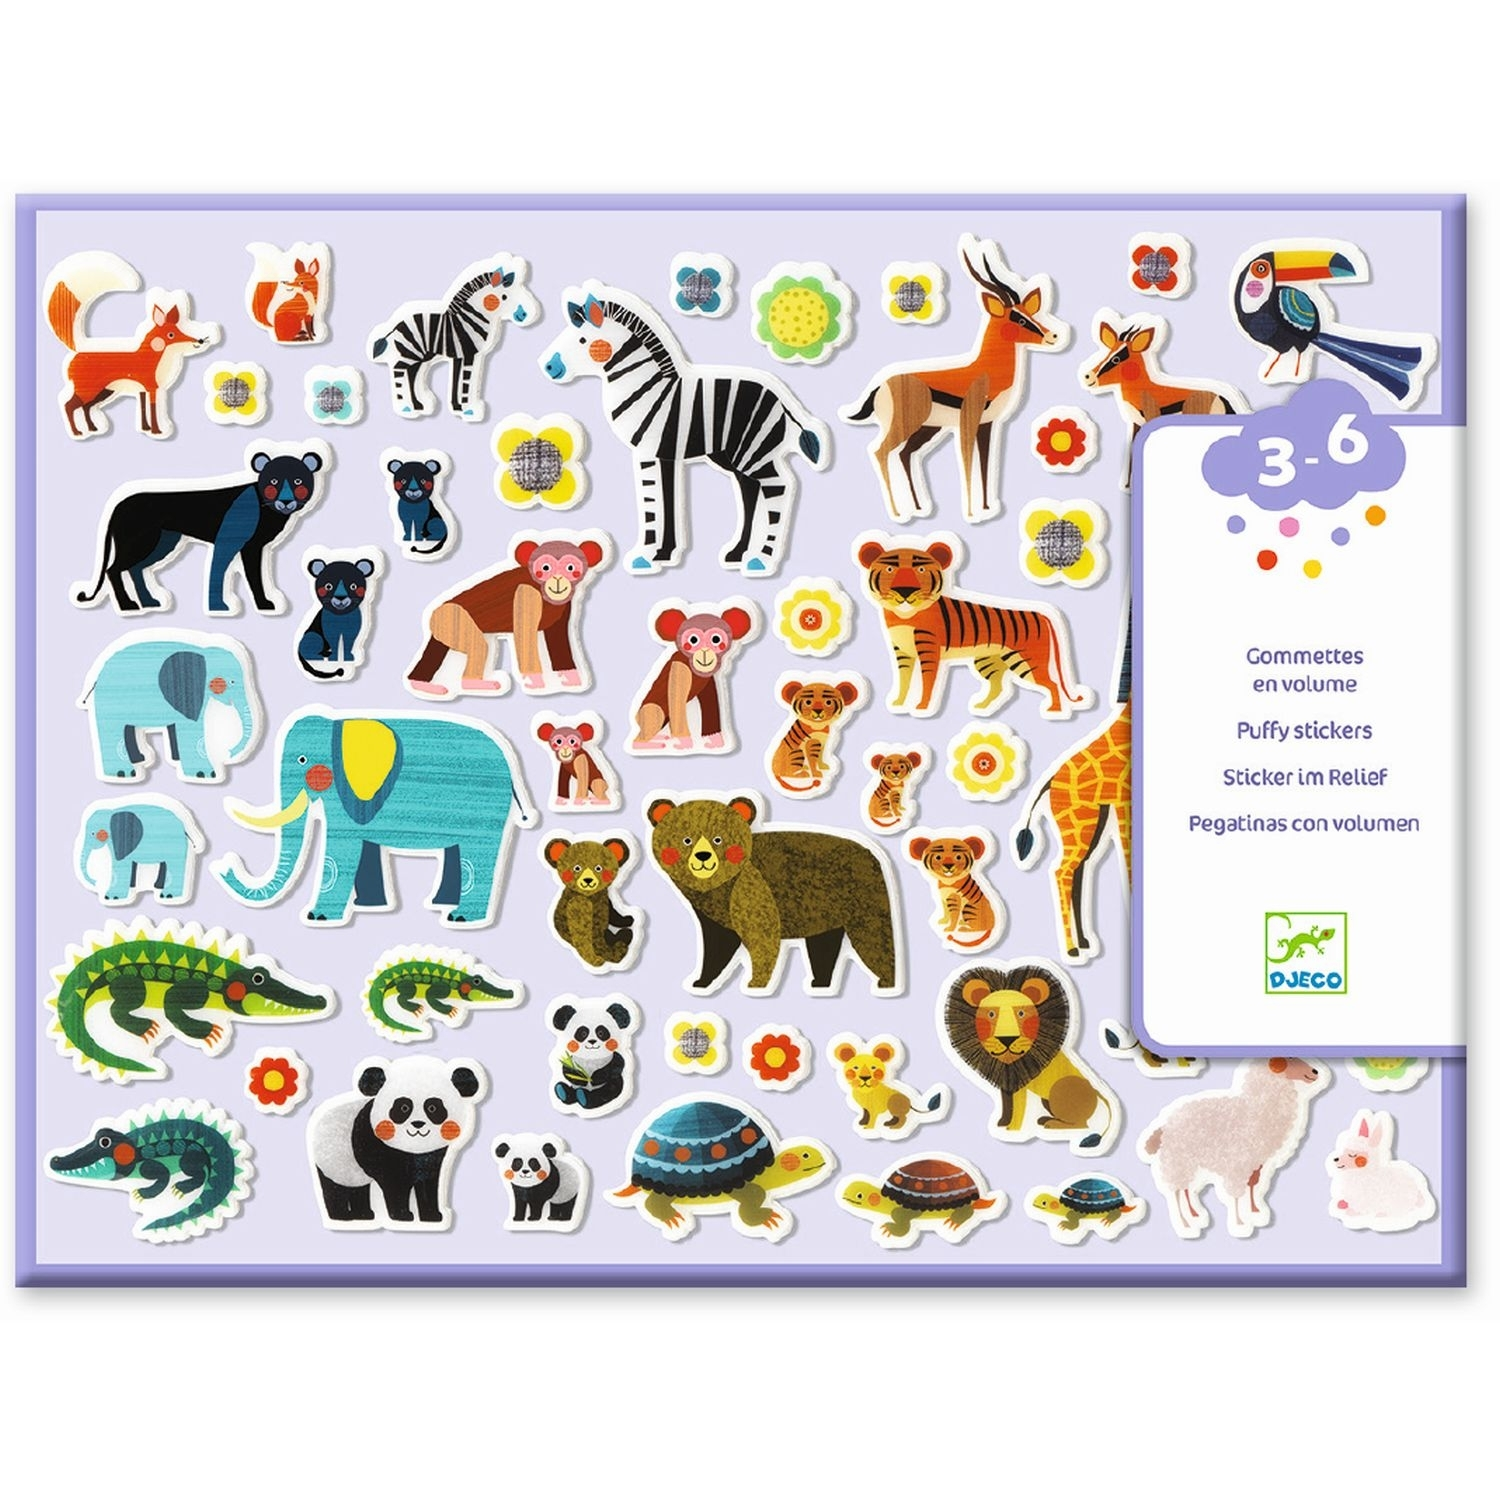 Small gift for little ones - Stickers -